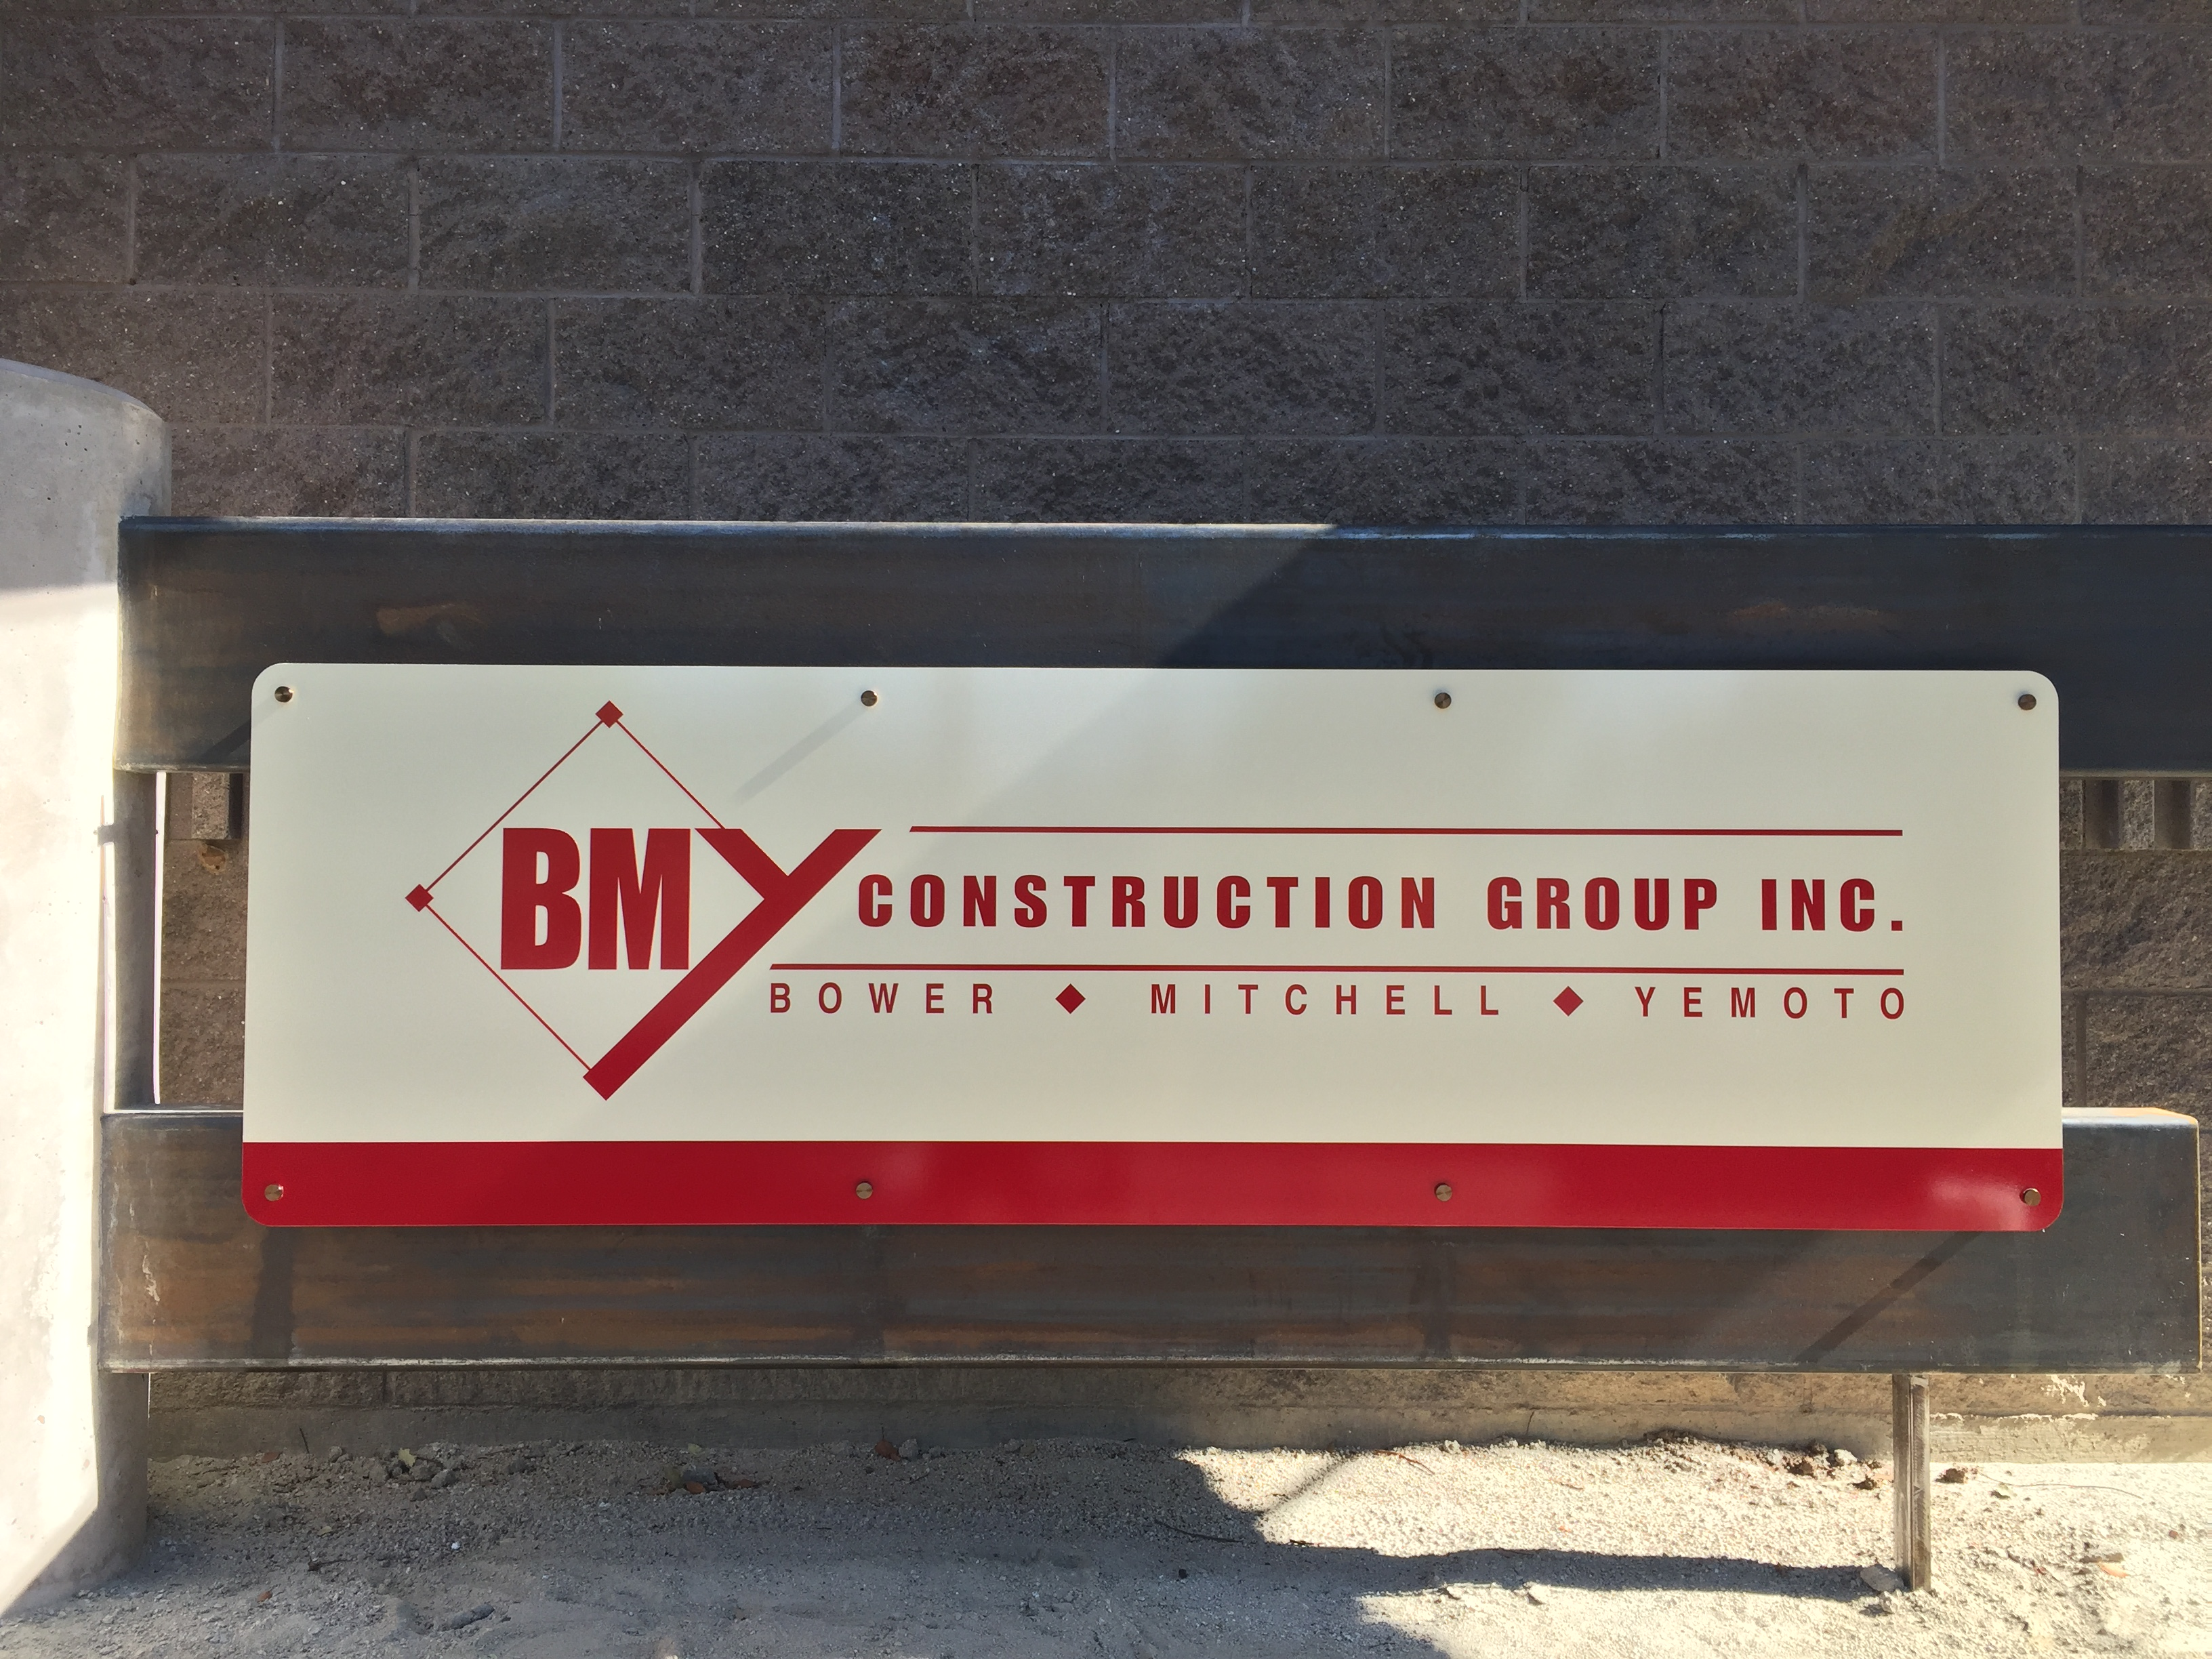 BMY Construction Group, Inc